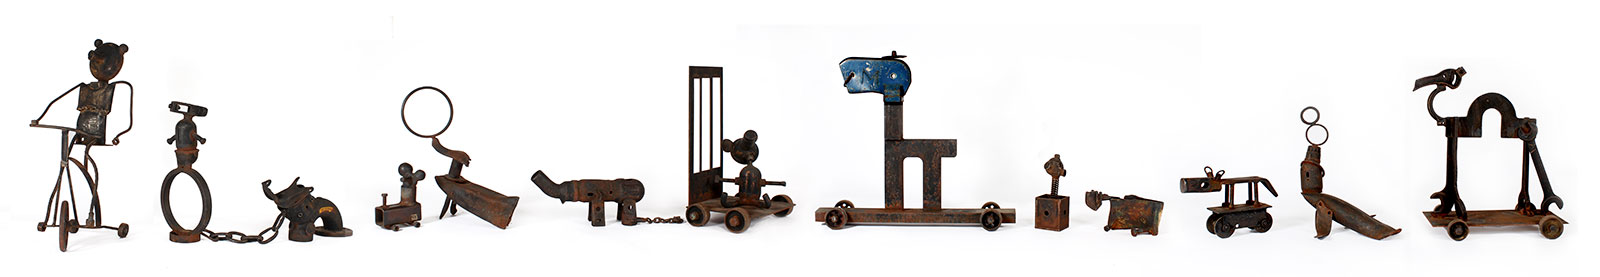 circus animals in bonds made from rusting steel